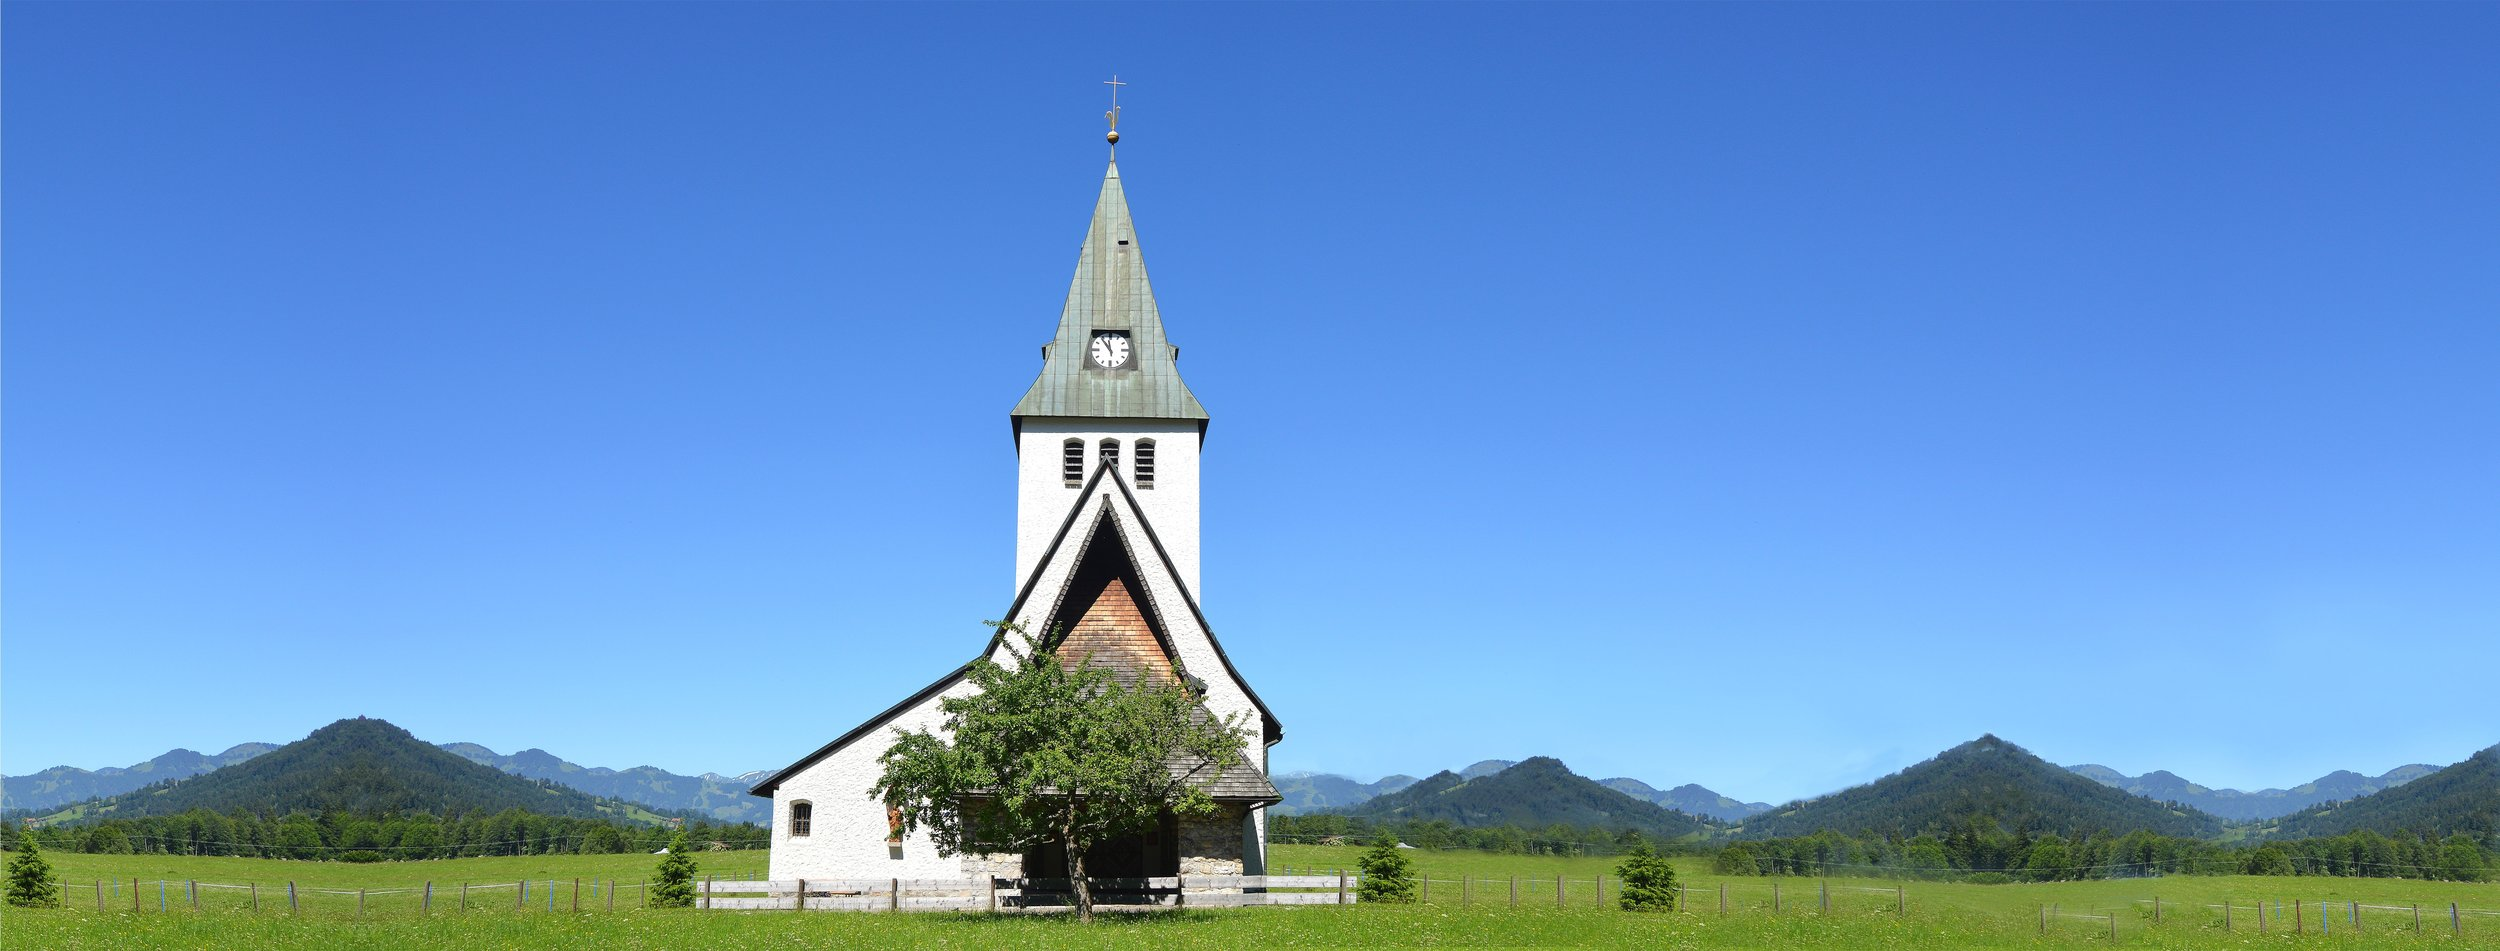 Country Church in Montana